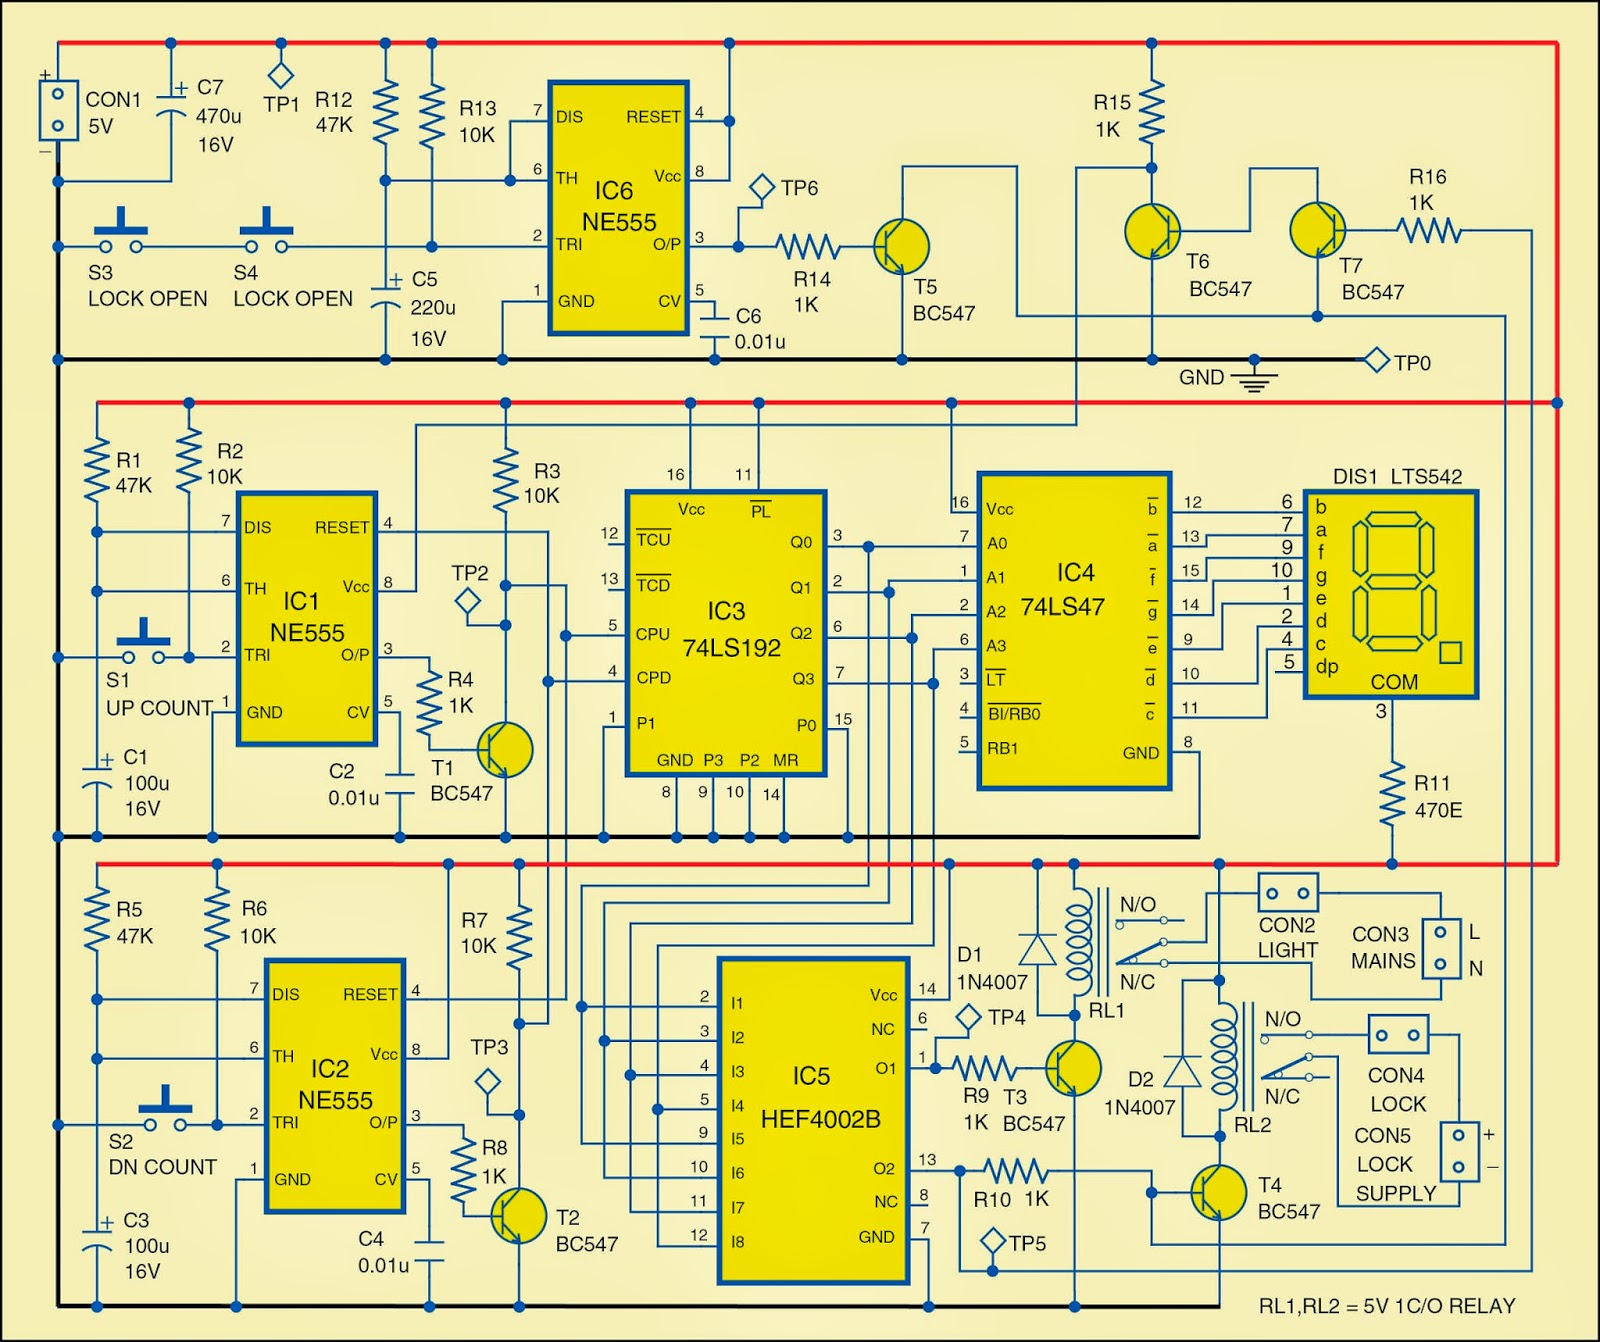 automatic room lock and lights circuit diagram [ 1600 x 1342 Pixel ]